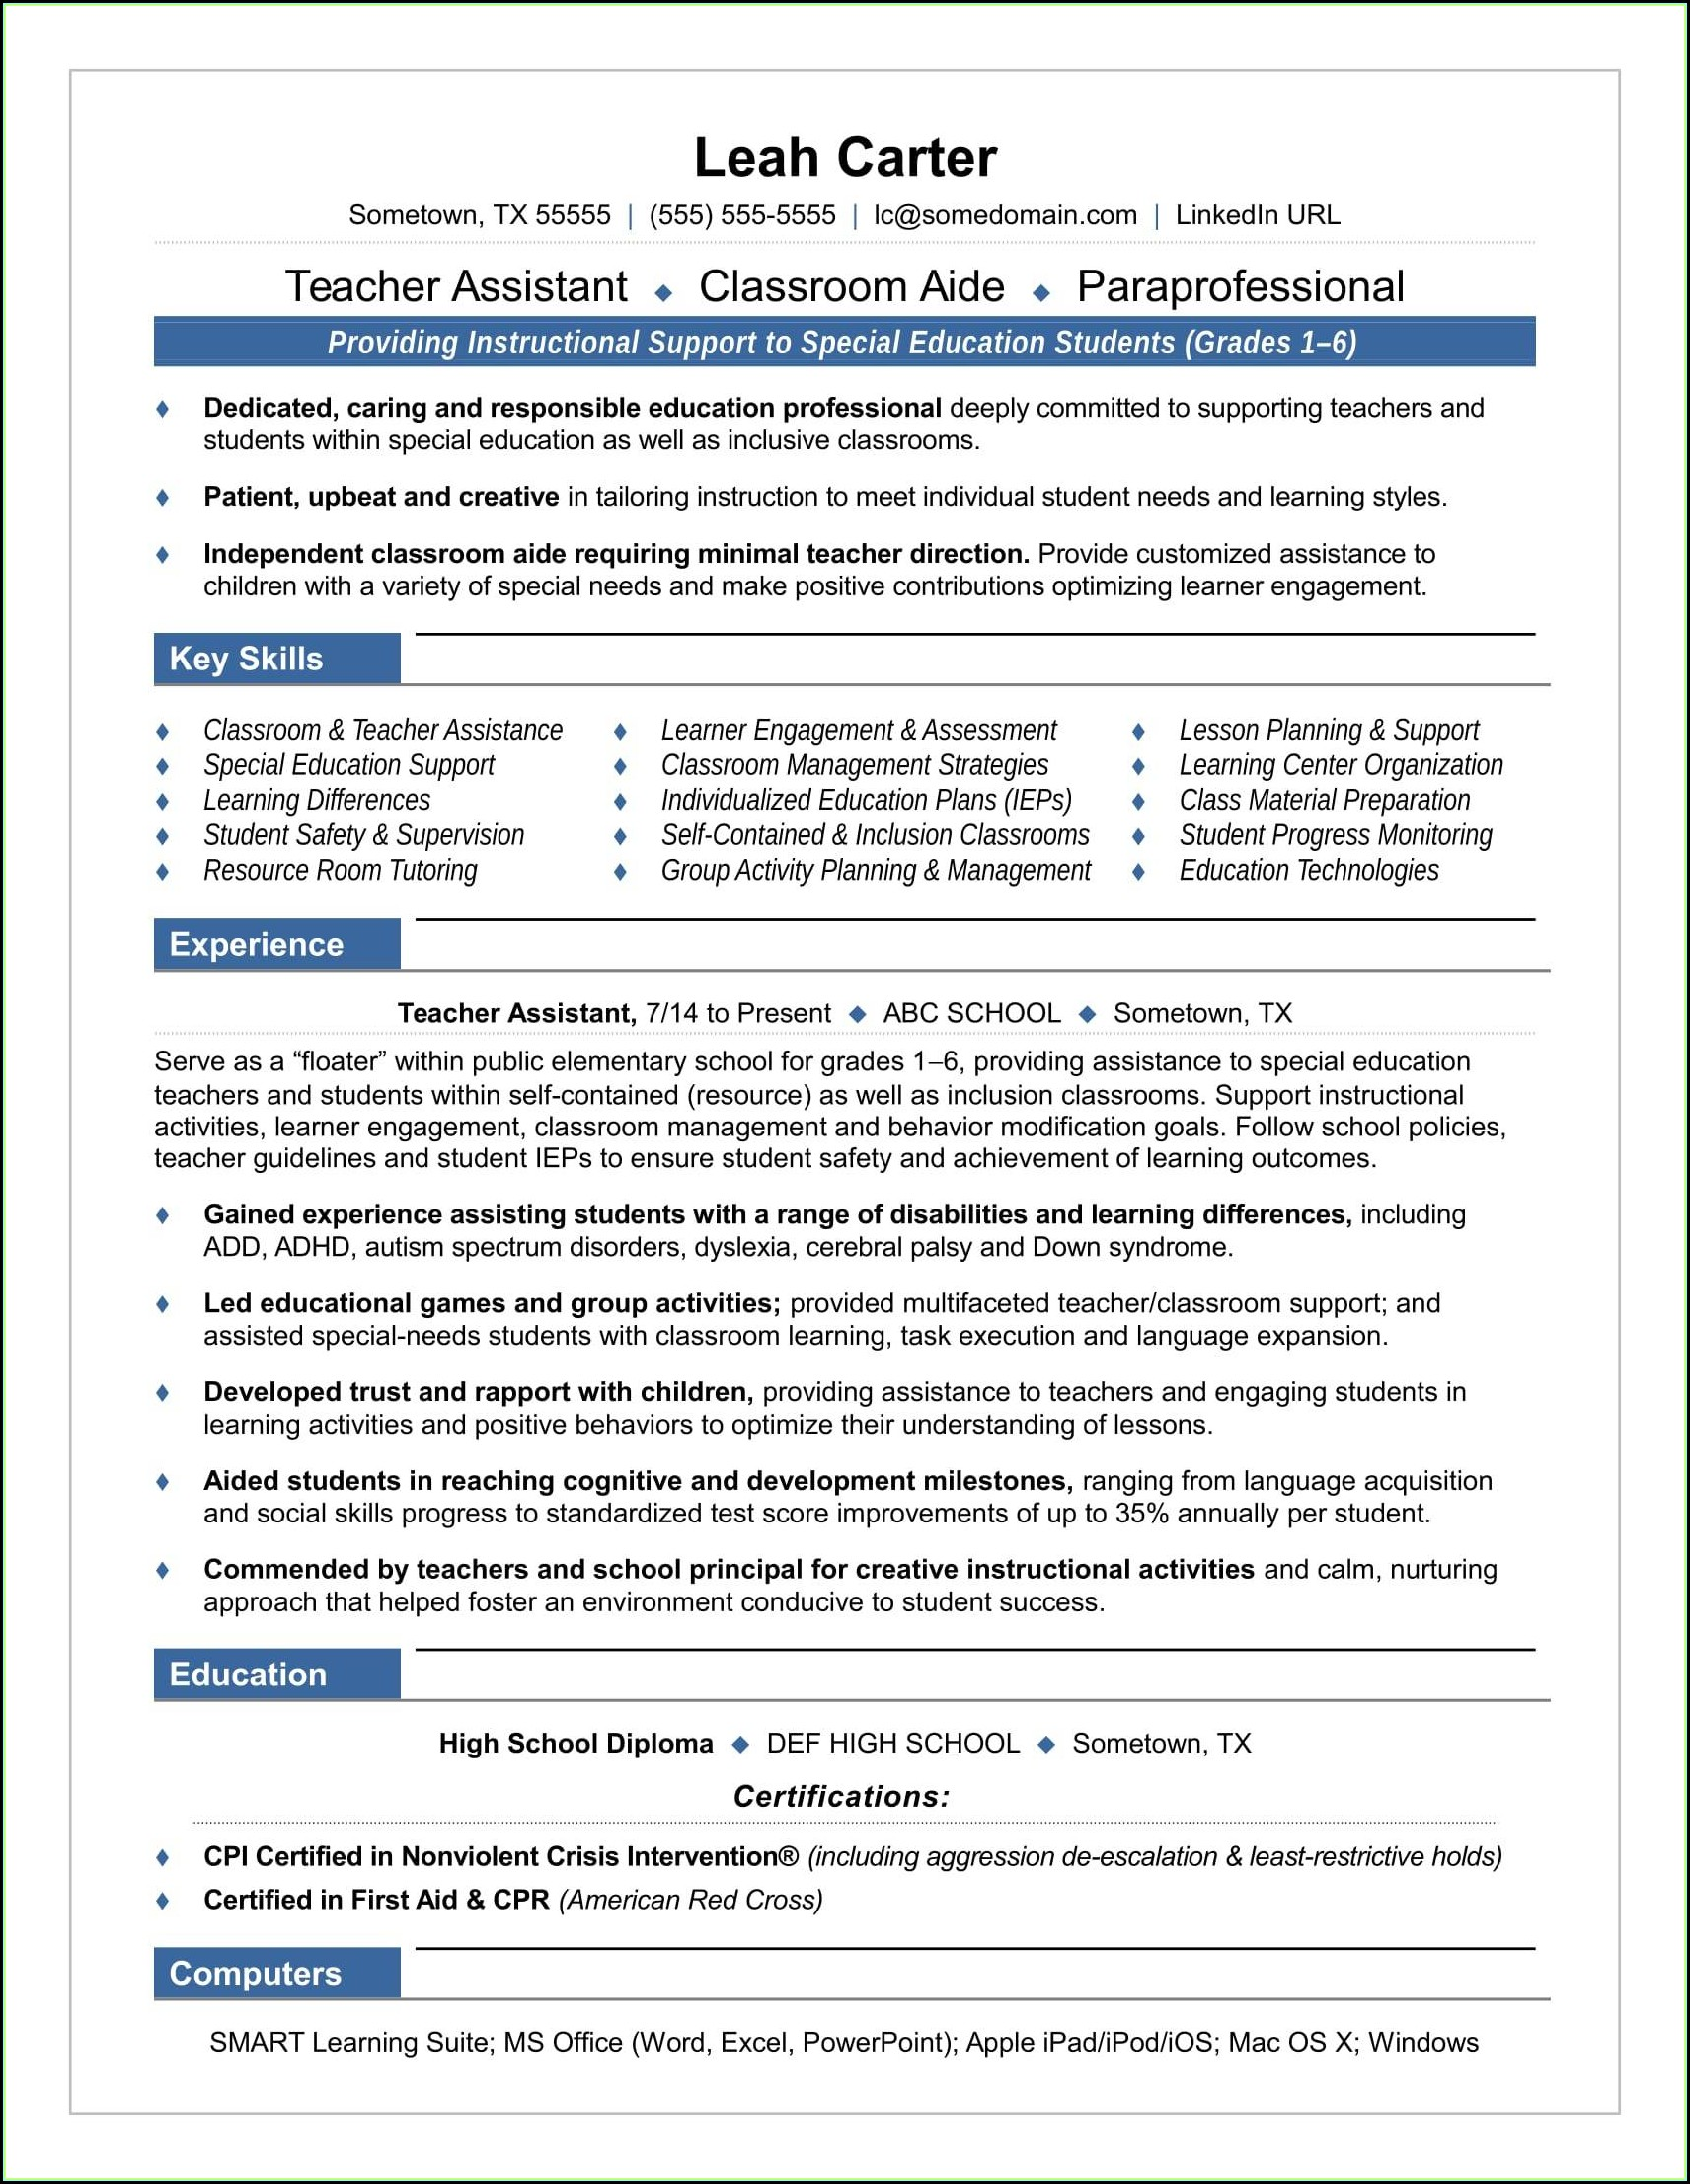 Free Resume Templates For Teacher Assistants